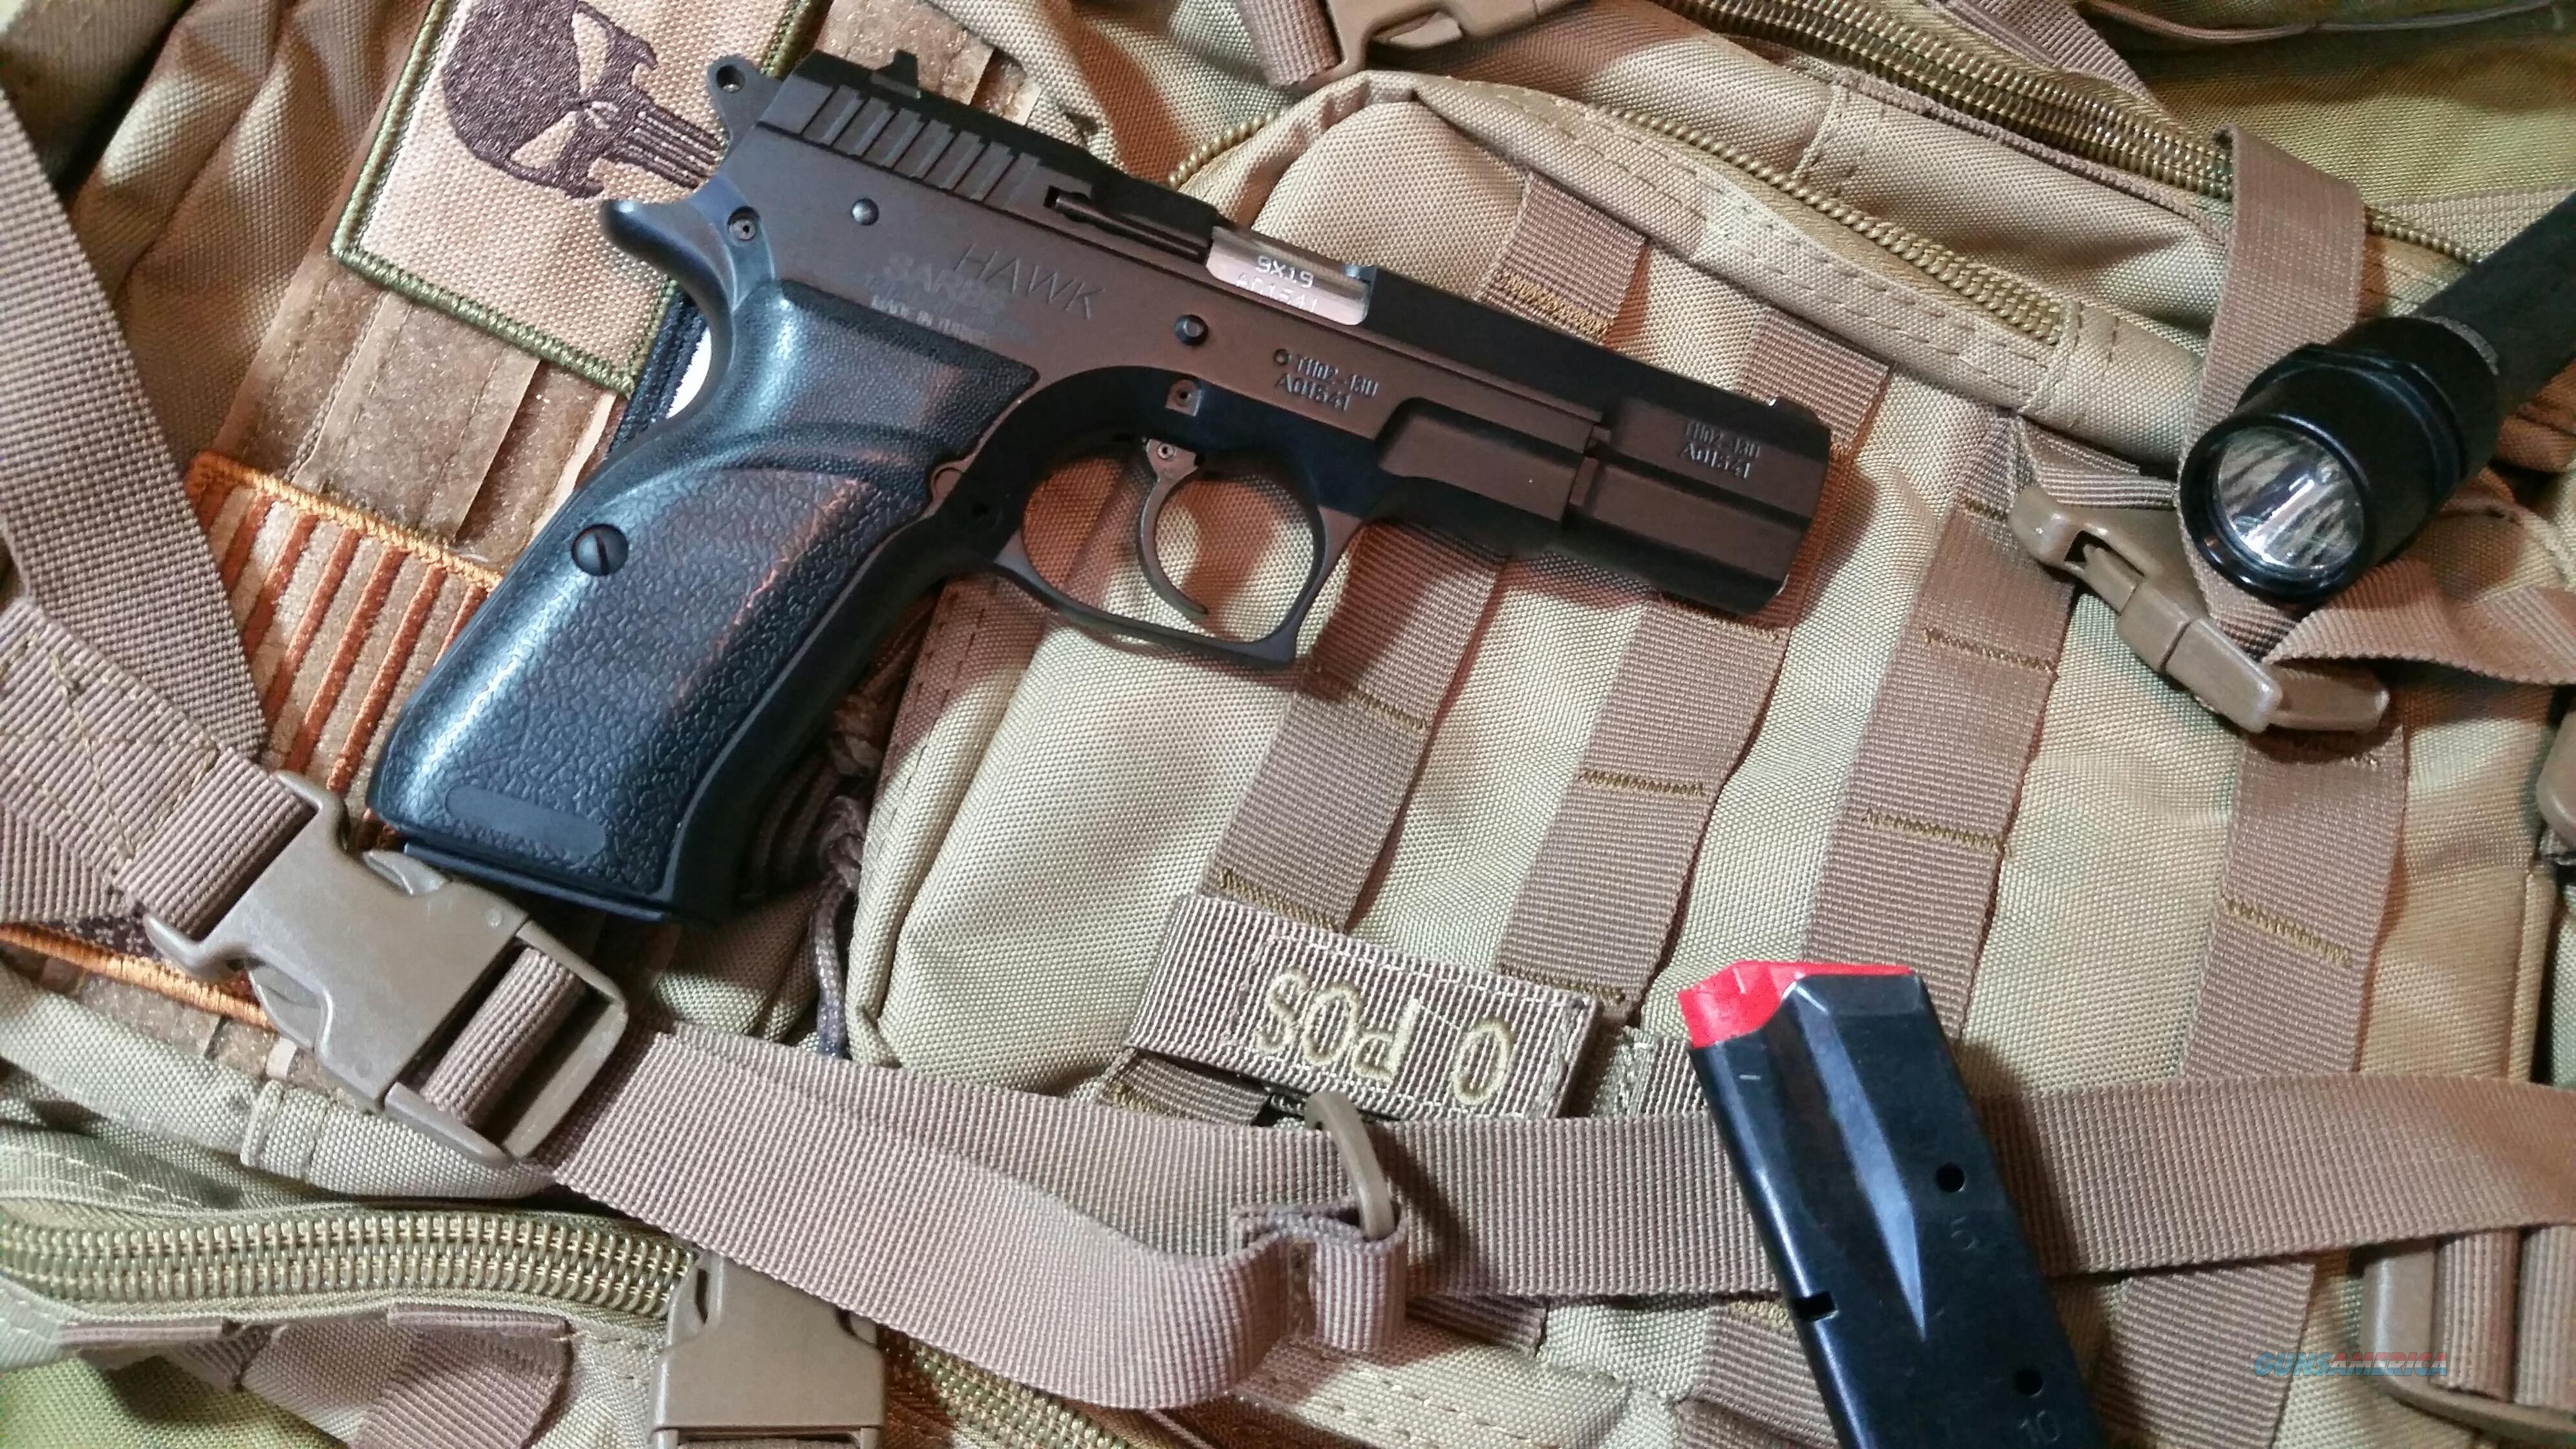 EAA High Capacity 9mm with 2 mags  Guns > Pistols > EAA Pistols > Other